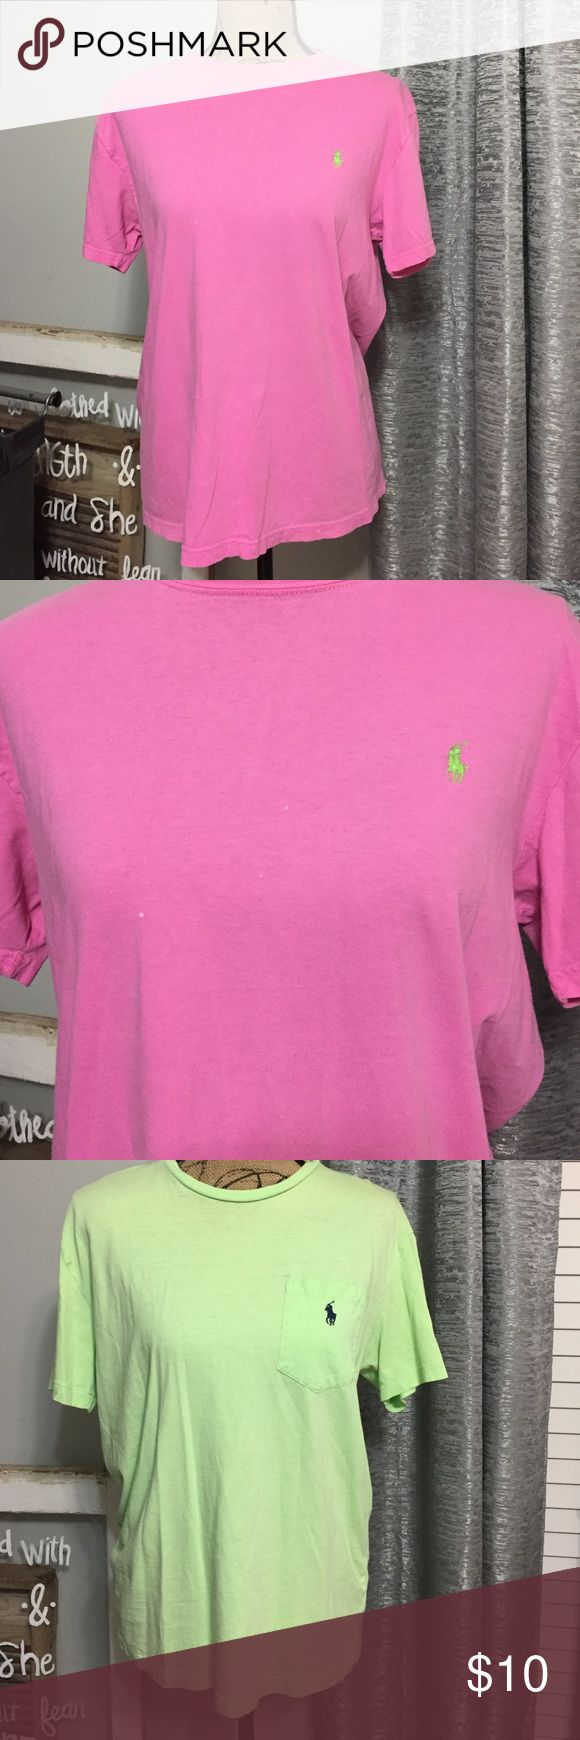 Polo tee shirts Pink and green bundle. 1 pink shirt and 1 green shirt. Both size S. The green is a men's and the pink is a women's. Hence the pocket. Damages are shown. Polo by Ralph Lauren Tops Tees - Short Sleeve